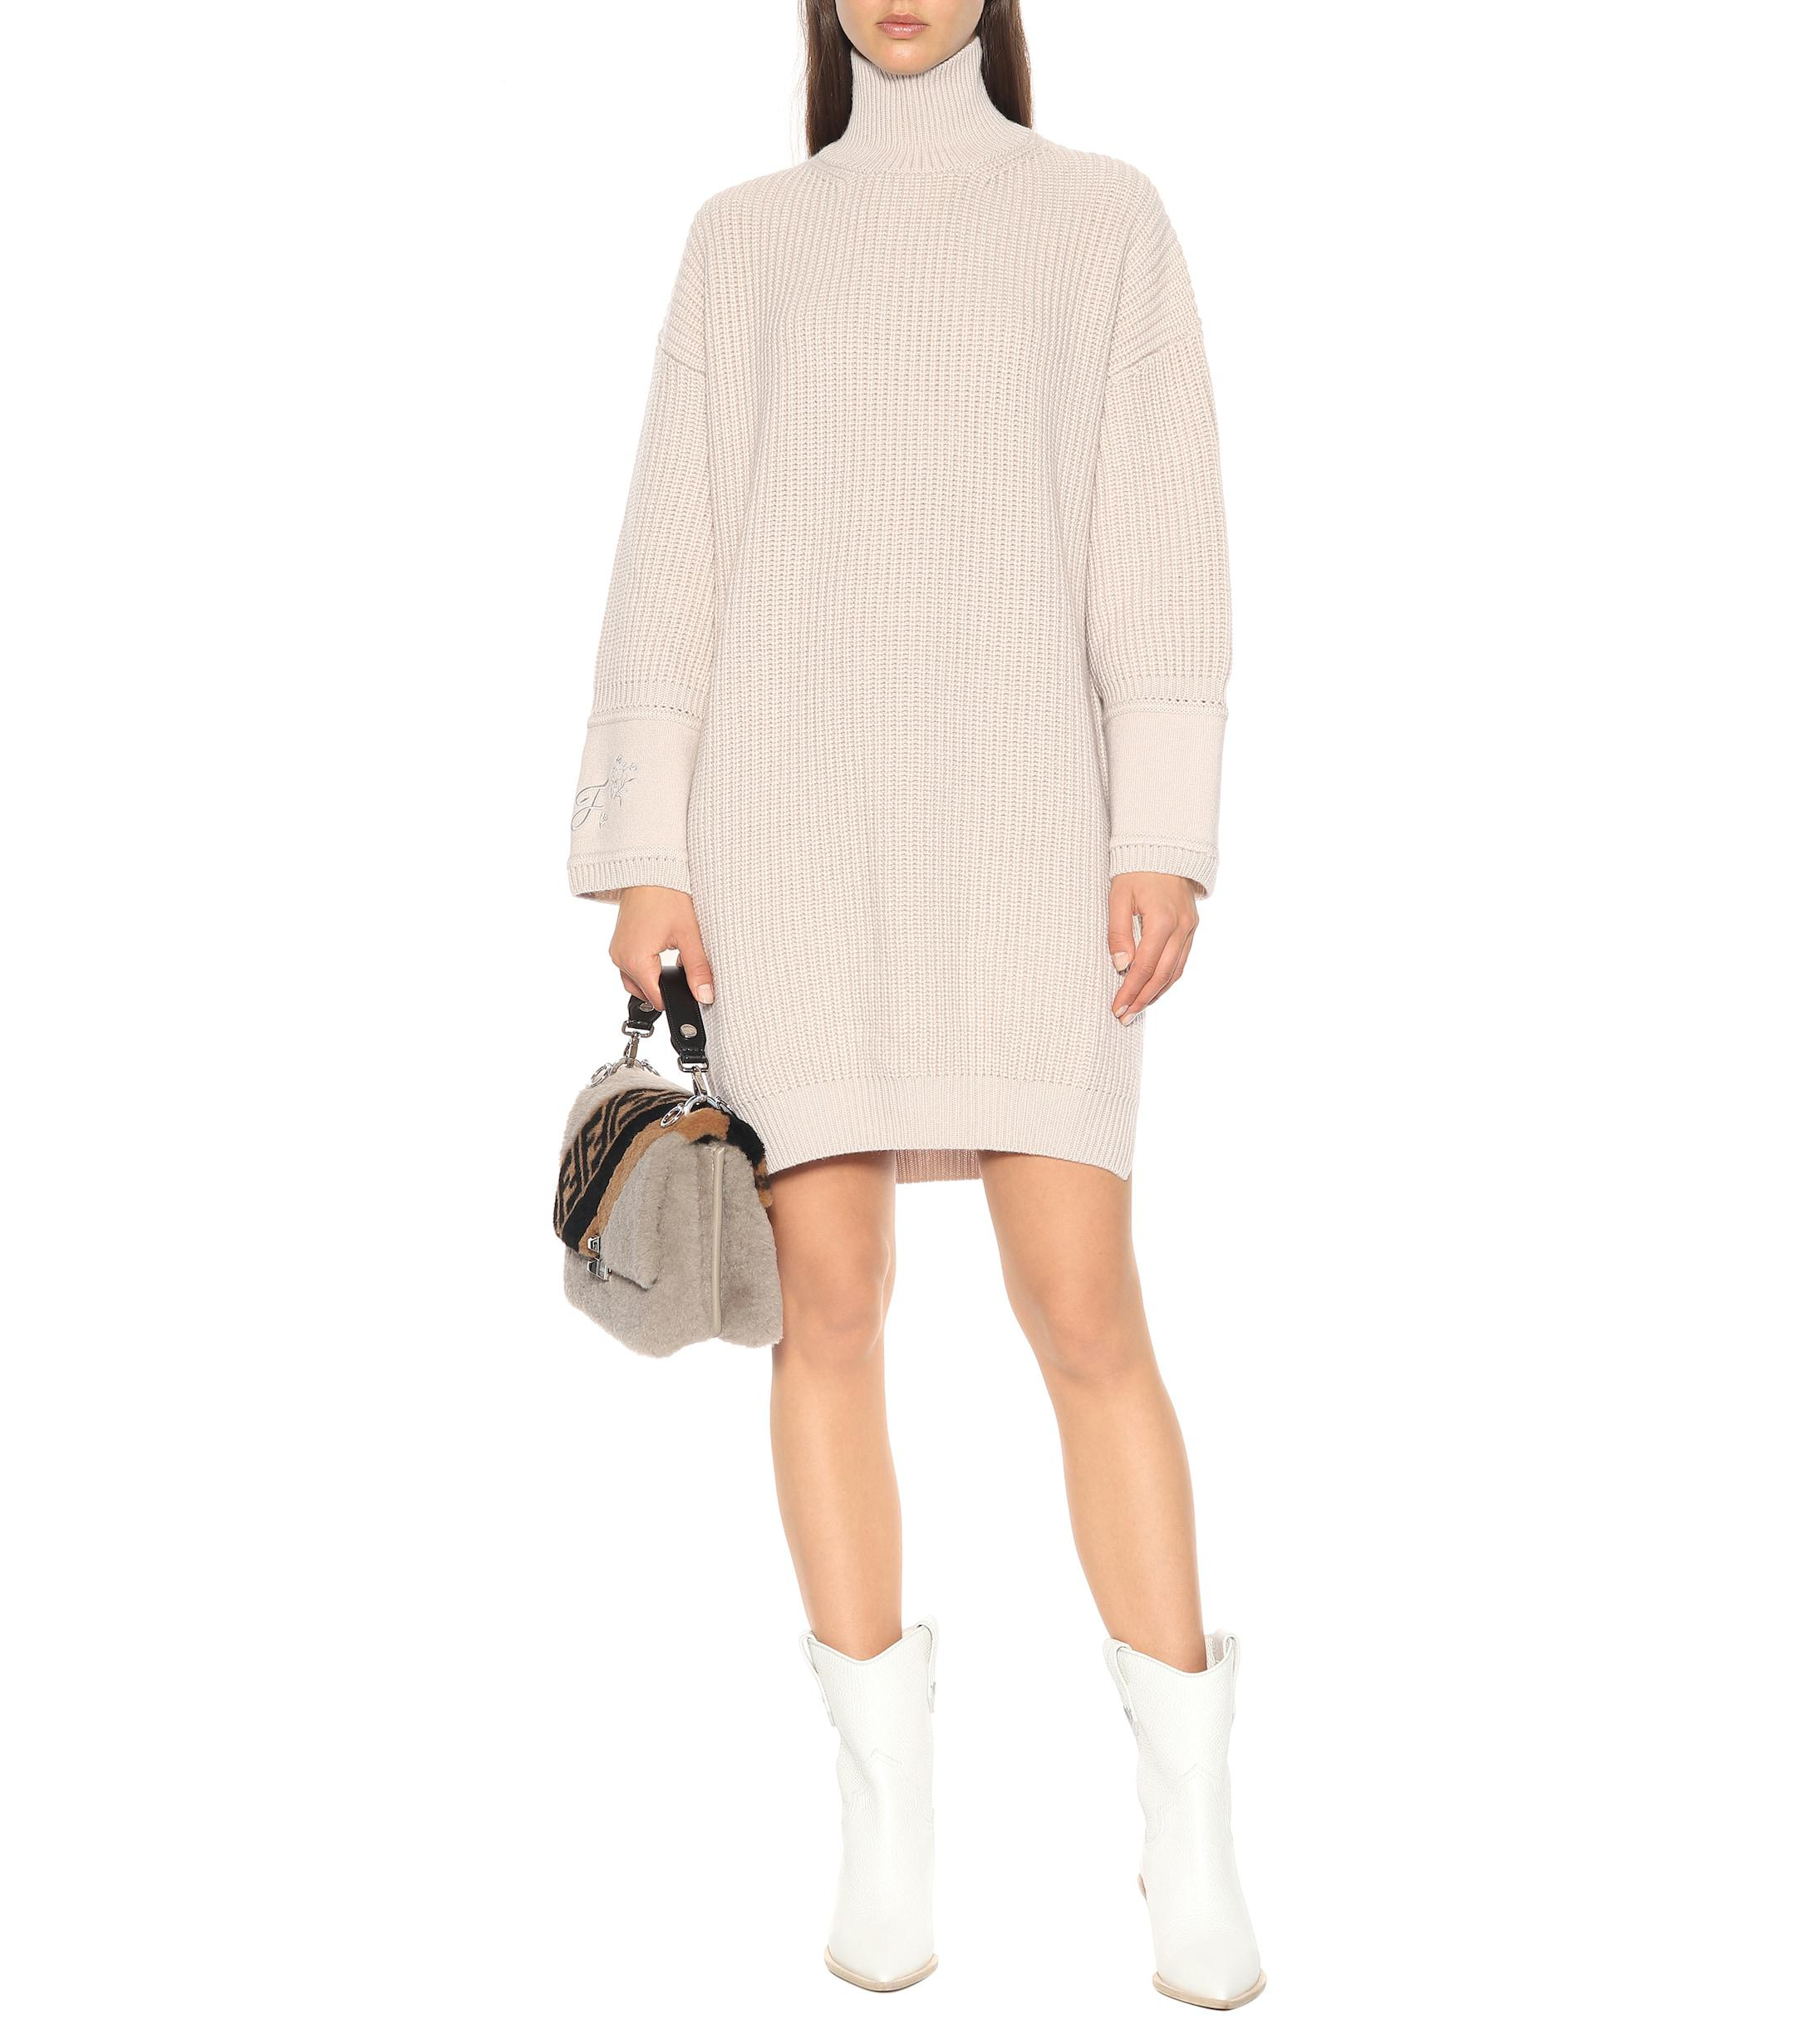 5400961aaa9 Fendi - Multicolor Cashmere Sweater-dress - Lyst. View fullscreen